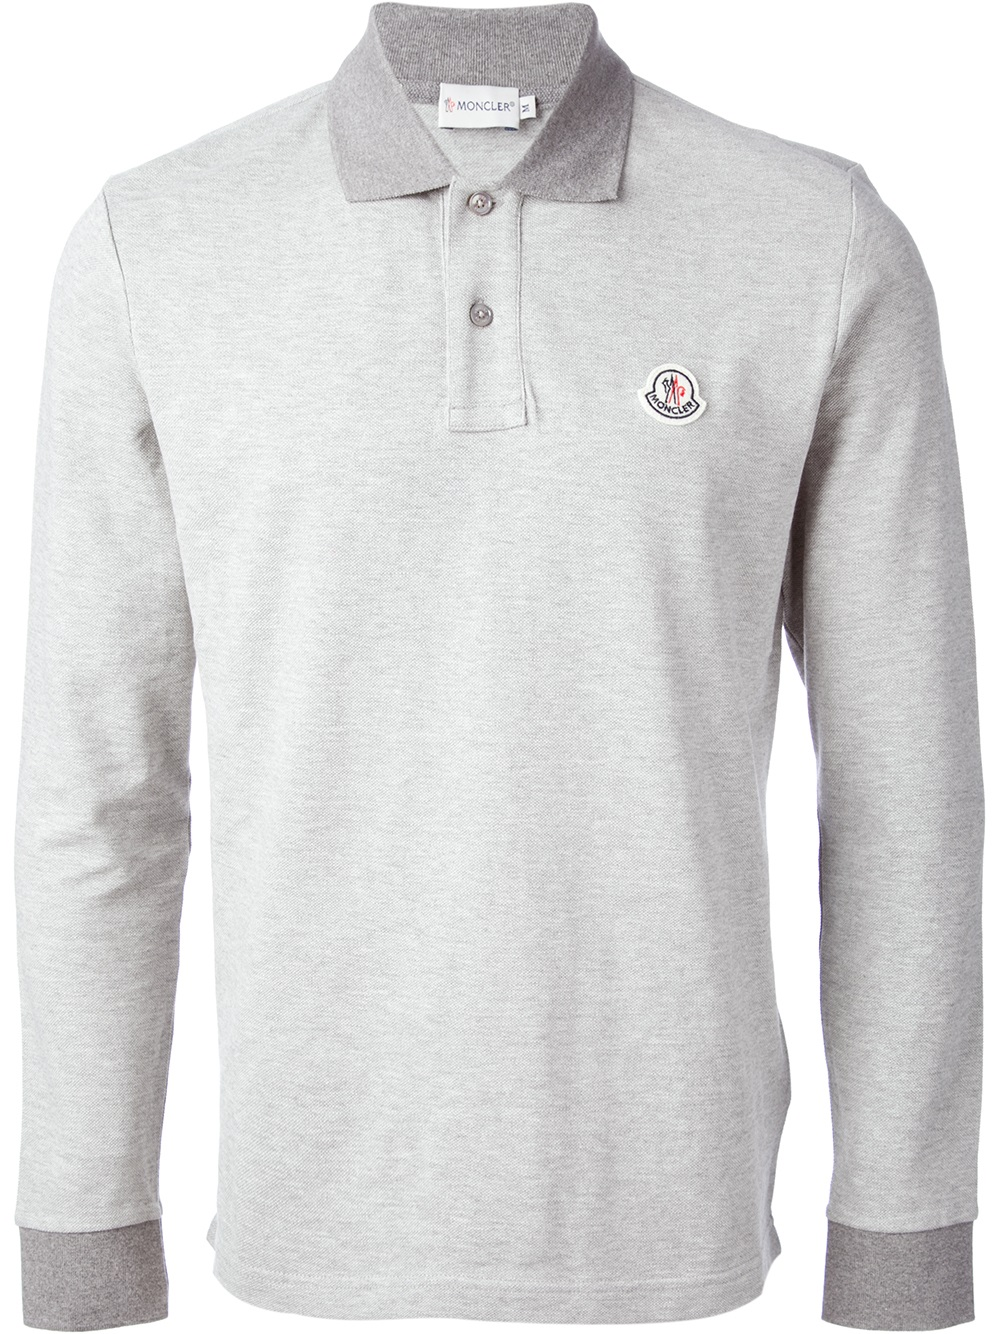 5354a1faf188 Shirt Lyst Moncler Sleeve Gray In Long Men Polo For wrIqxAr6